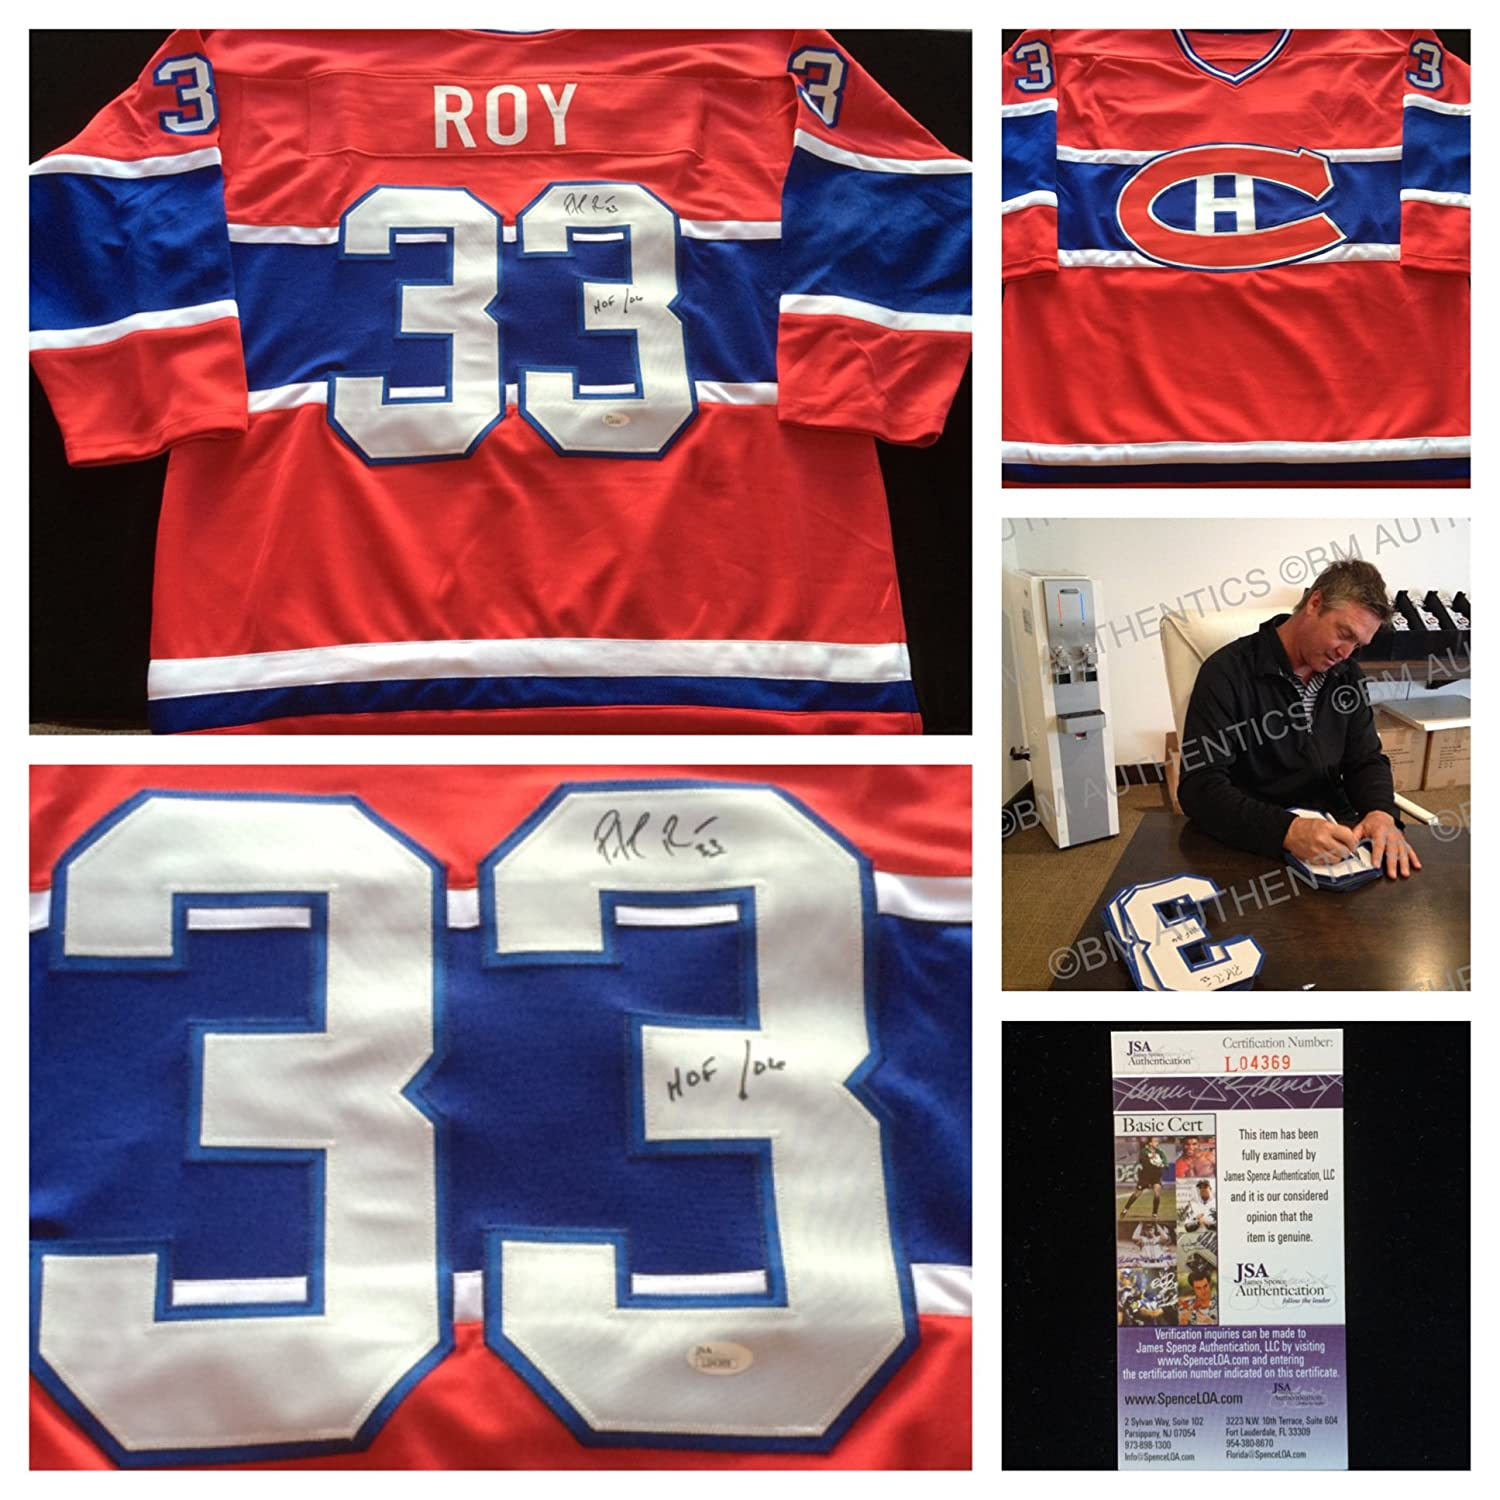 ... Patrick Roy Montreal Canadiens Signed Autograph Red Jersey 33. JSA  L04369 at Amazons Sports Collectibles ... 3cc8df892